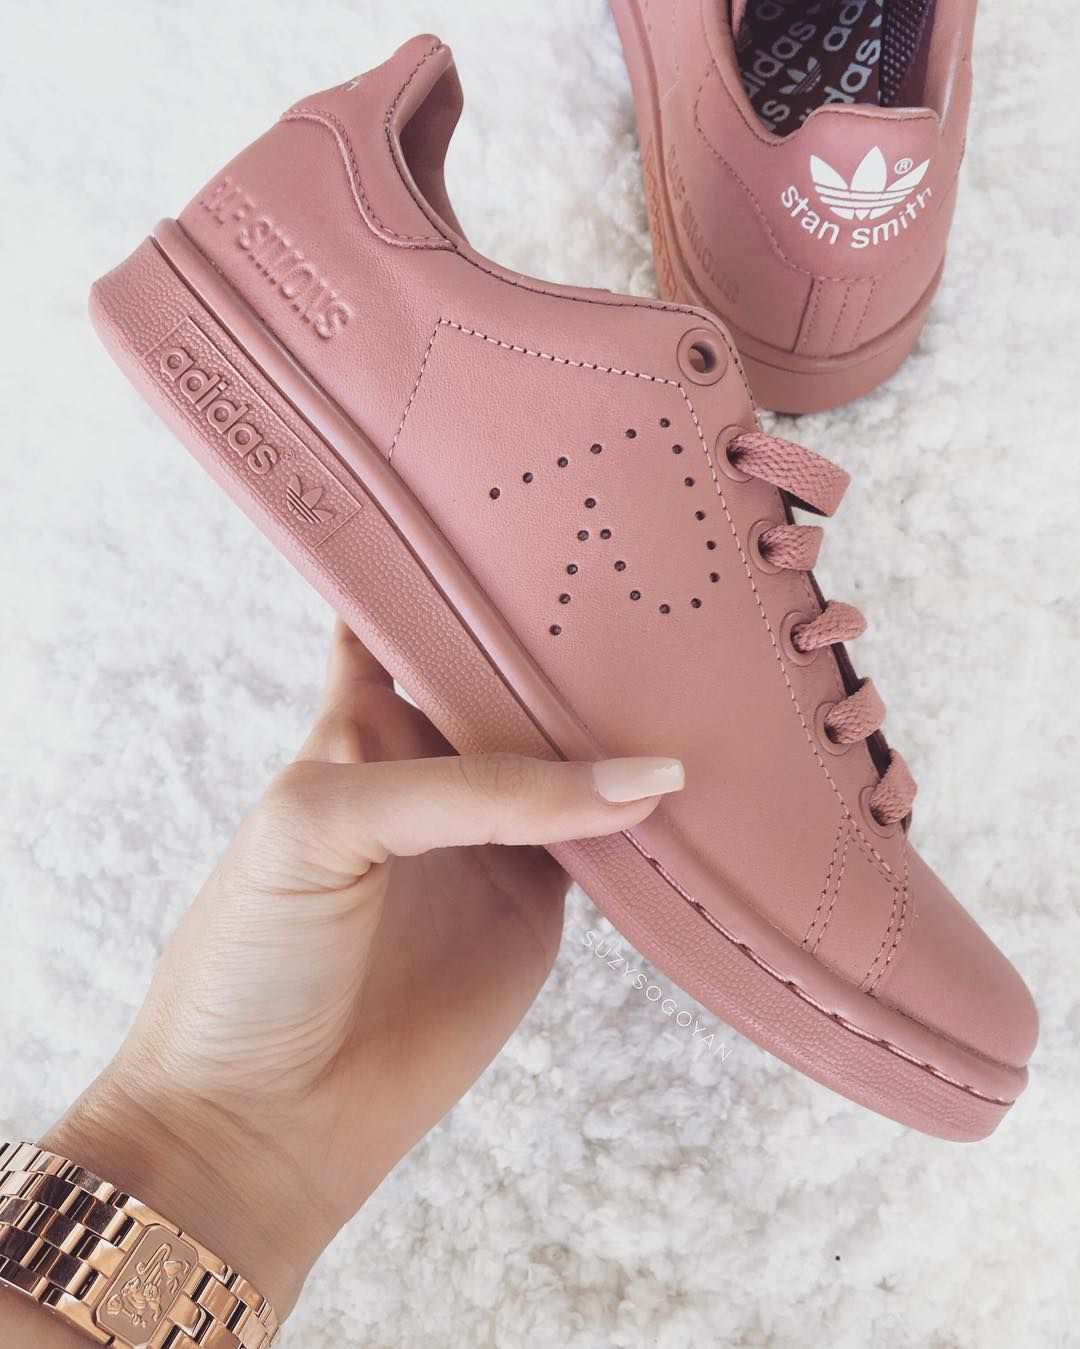 Blush pink adidas sneakers https://www.cool-shoes.net/